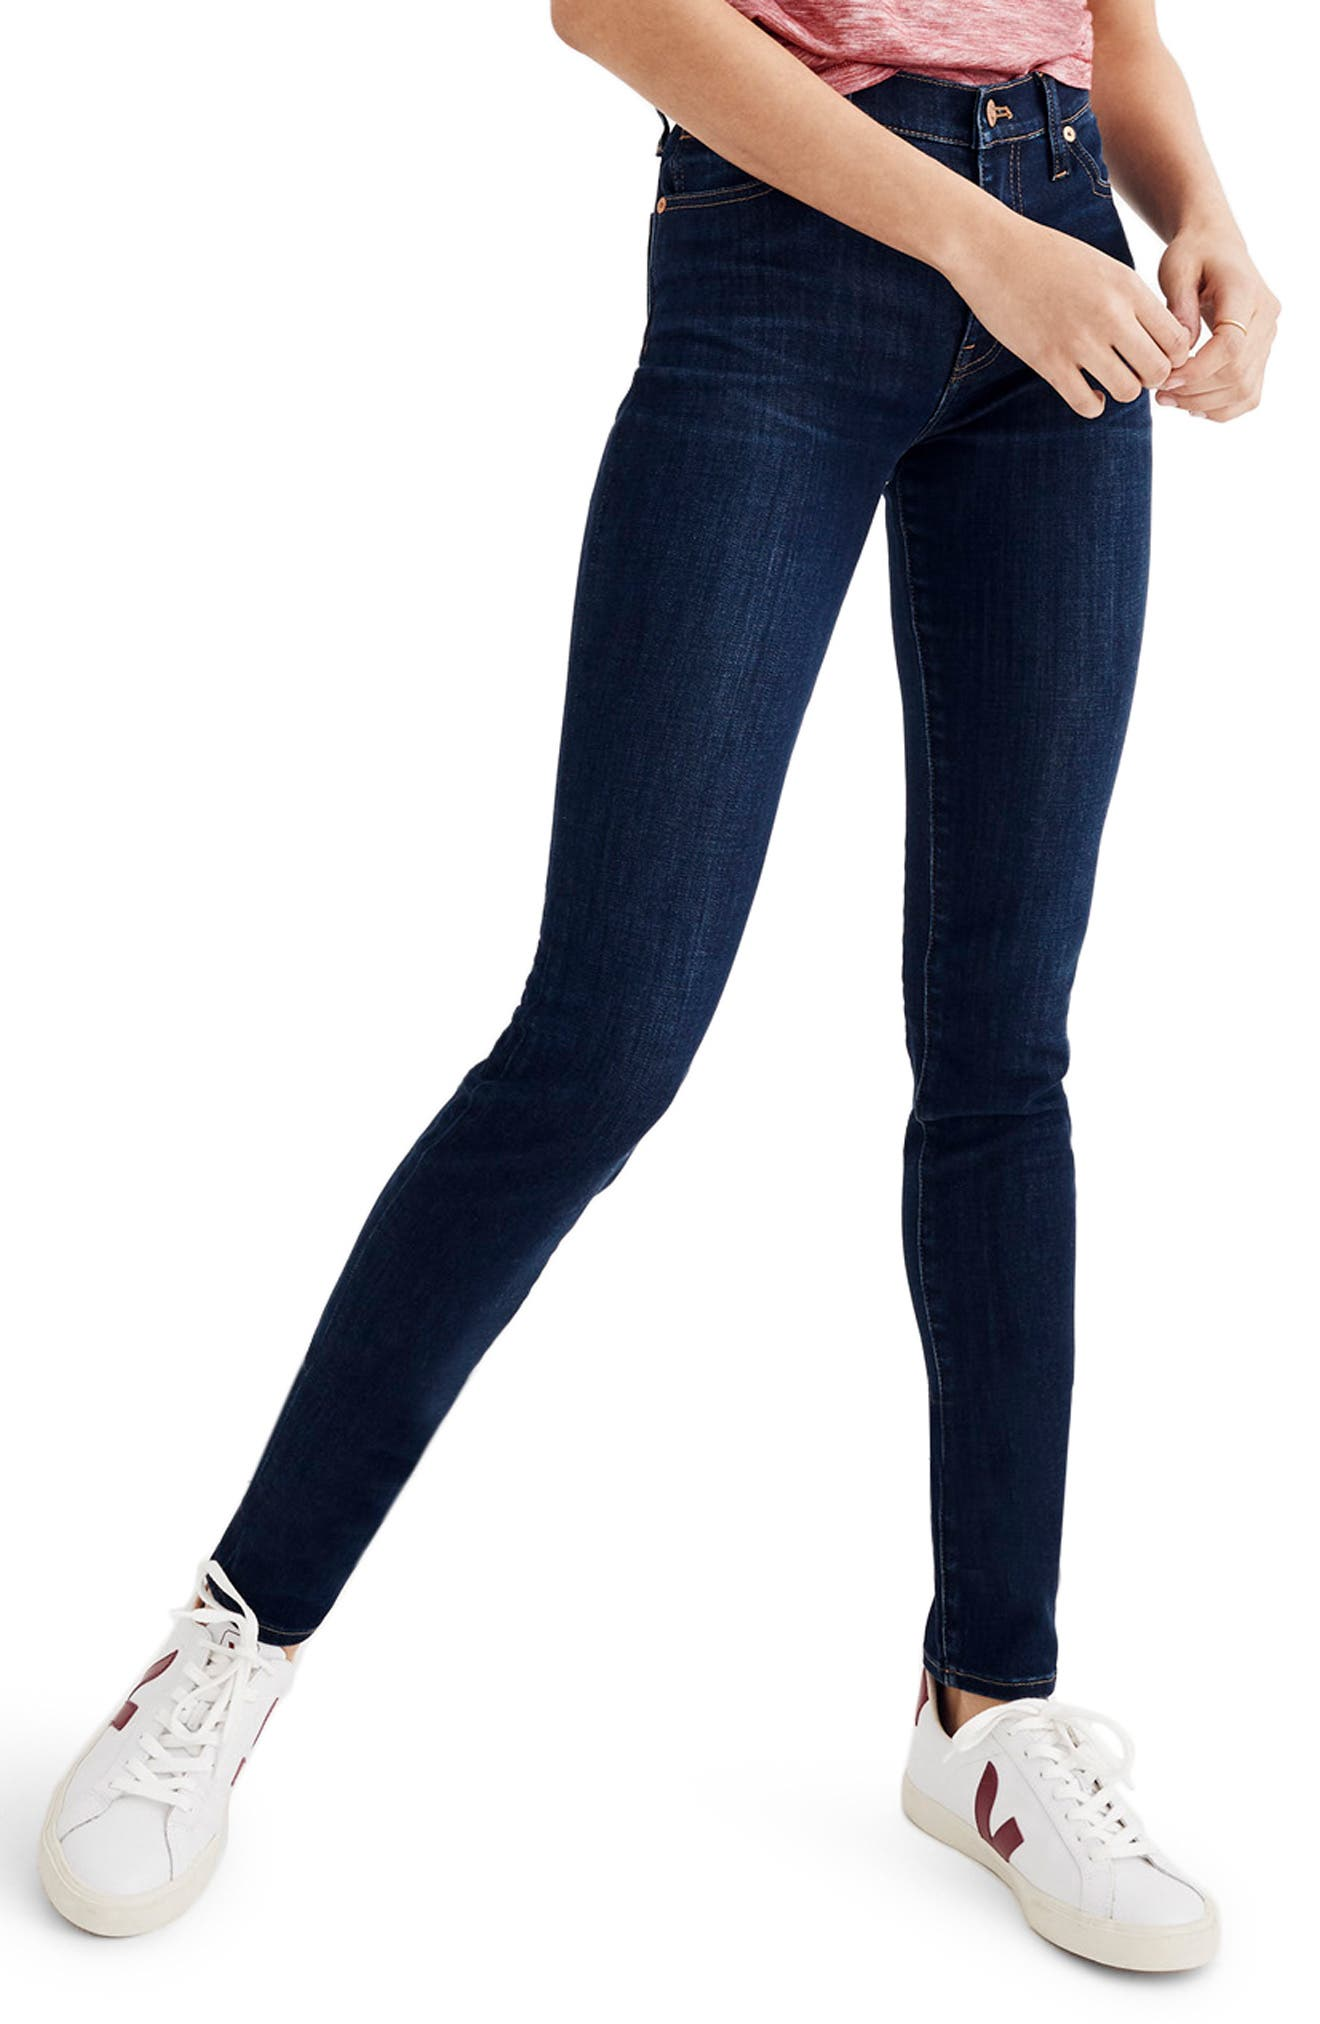 Women's Madewell 9-Inch High Rise Skinny Jeans